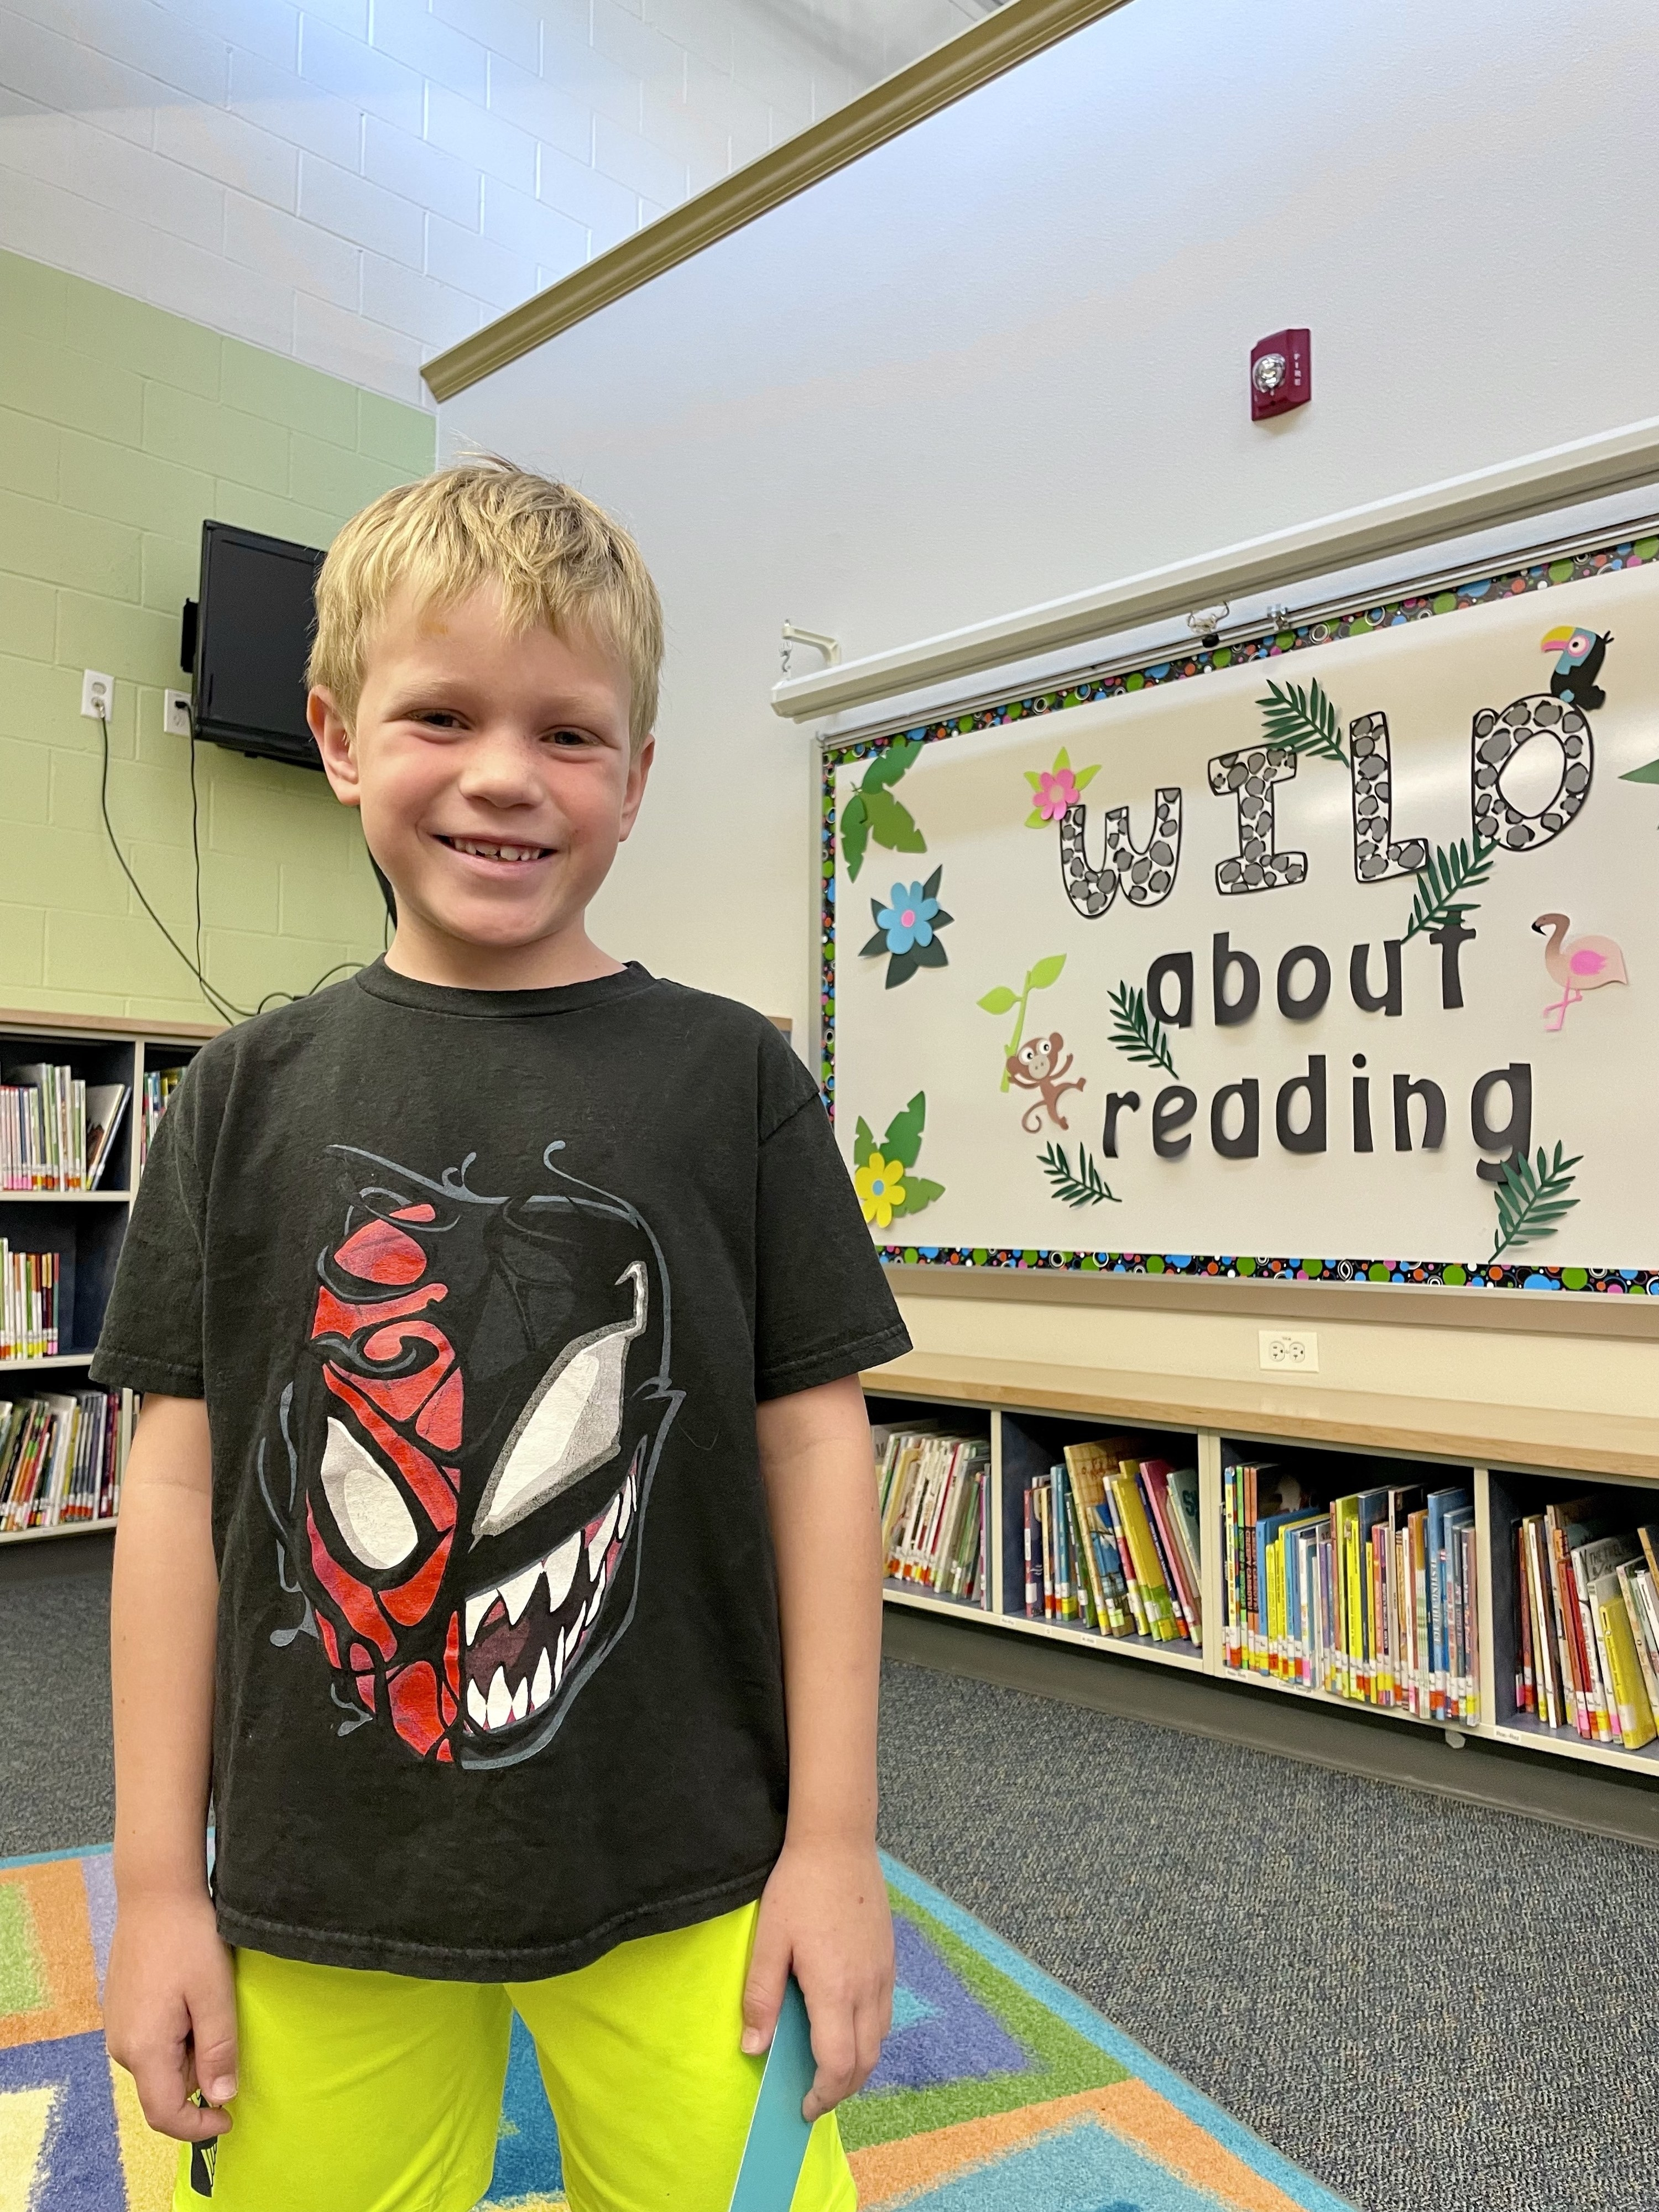 The author's son at the library